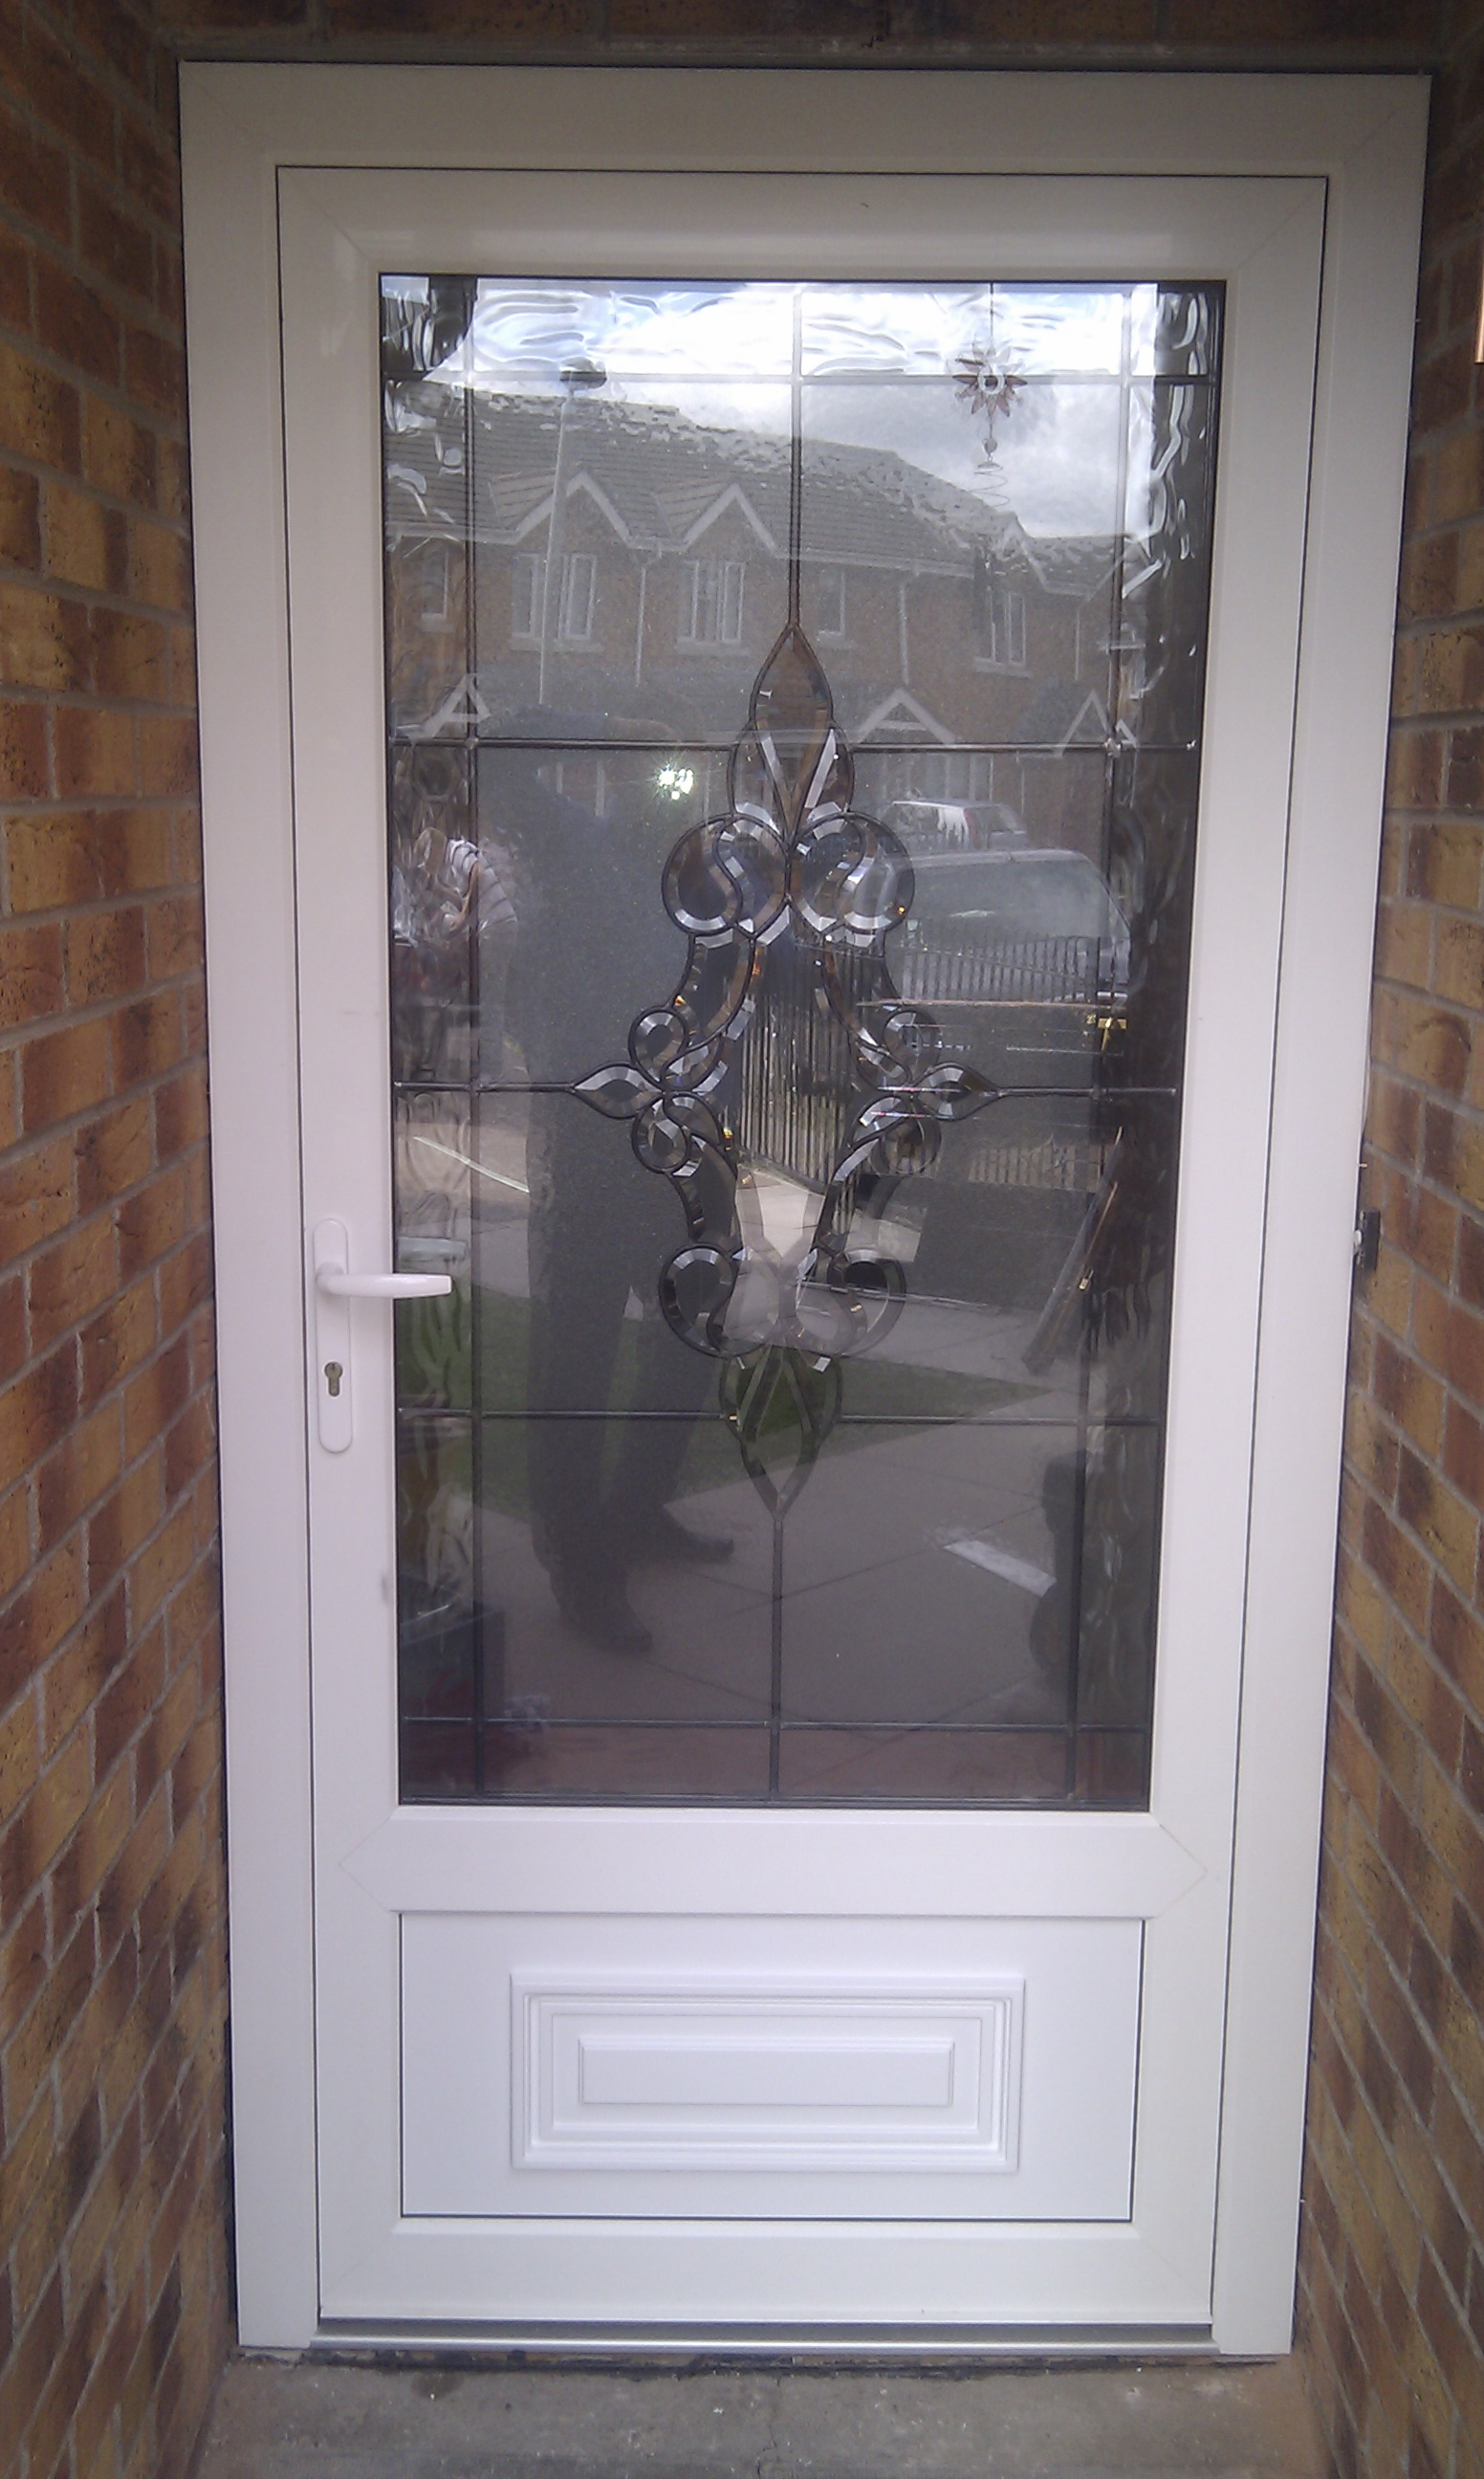 Best prices for windows in Belfast & Belfast Windows u0026 Doors | Belfast Windows u0026 Doors pezcame.com